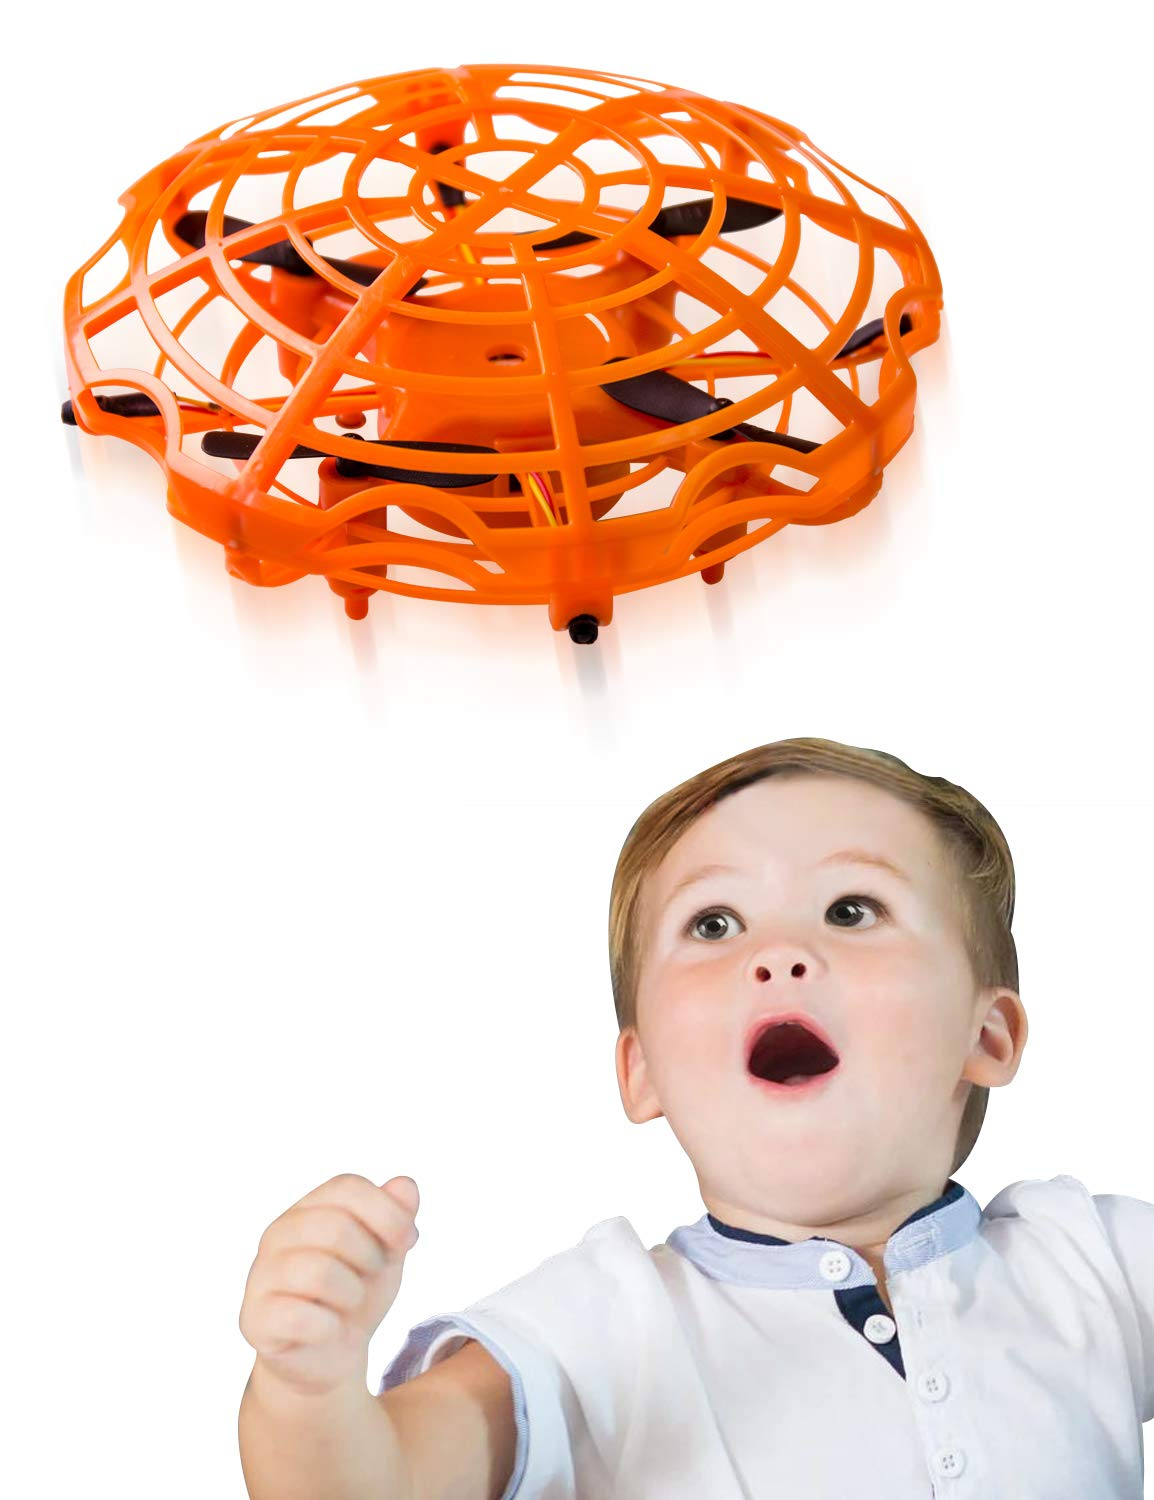 Refasy Flying Toys for Kids, UFO Toy for Boys 3 4 5 6 7 8 9 10 11 12 Year Old Drones for Kids Mini Drones Hand Controlled Flying Ball Drone Toys LED Light for Kids, Boys and Girls Toys Orange by Refasy (Image #1)